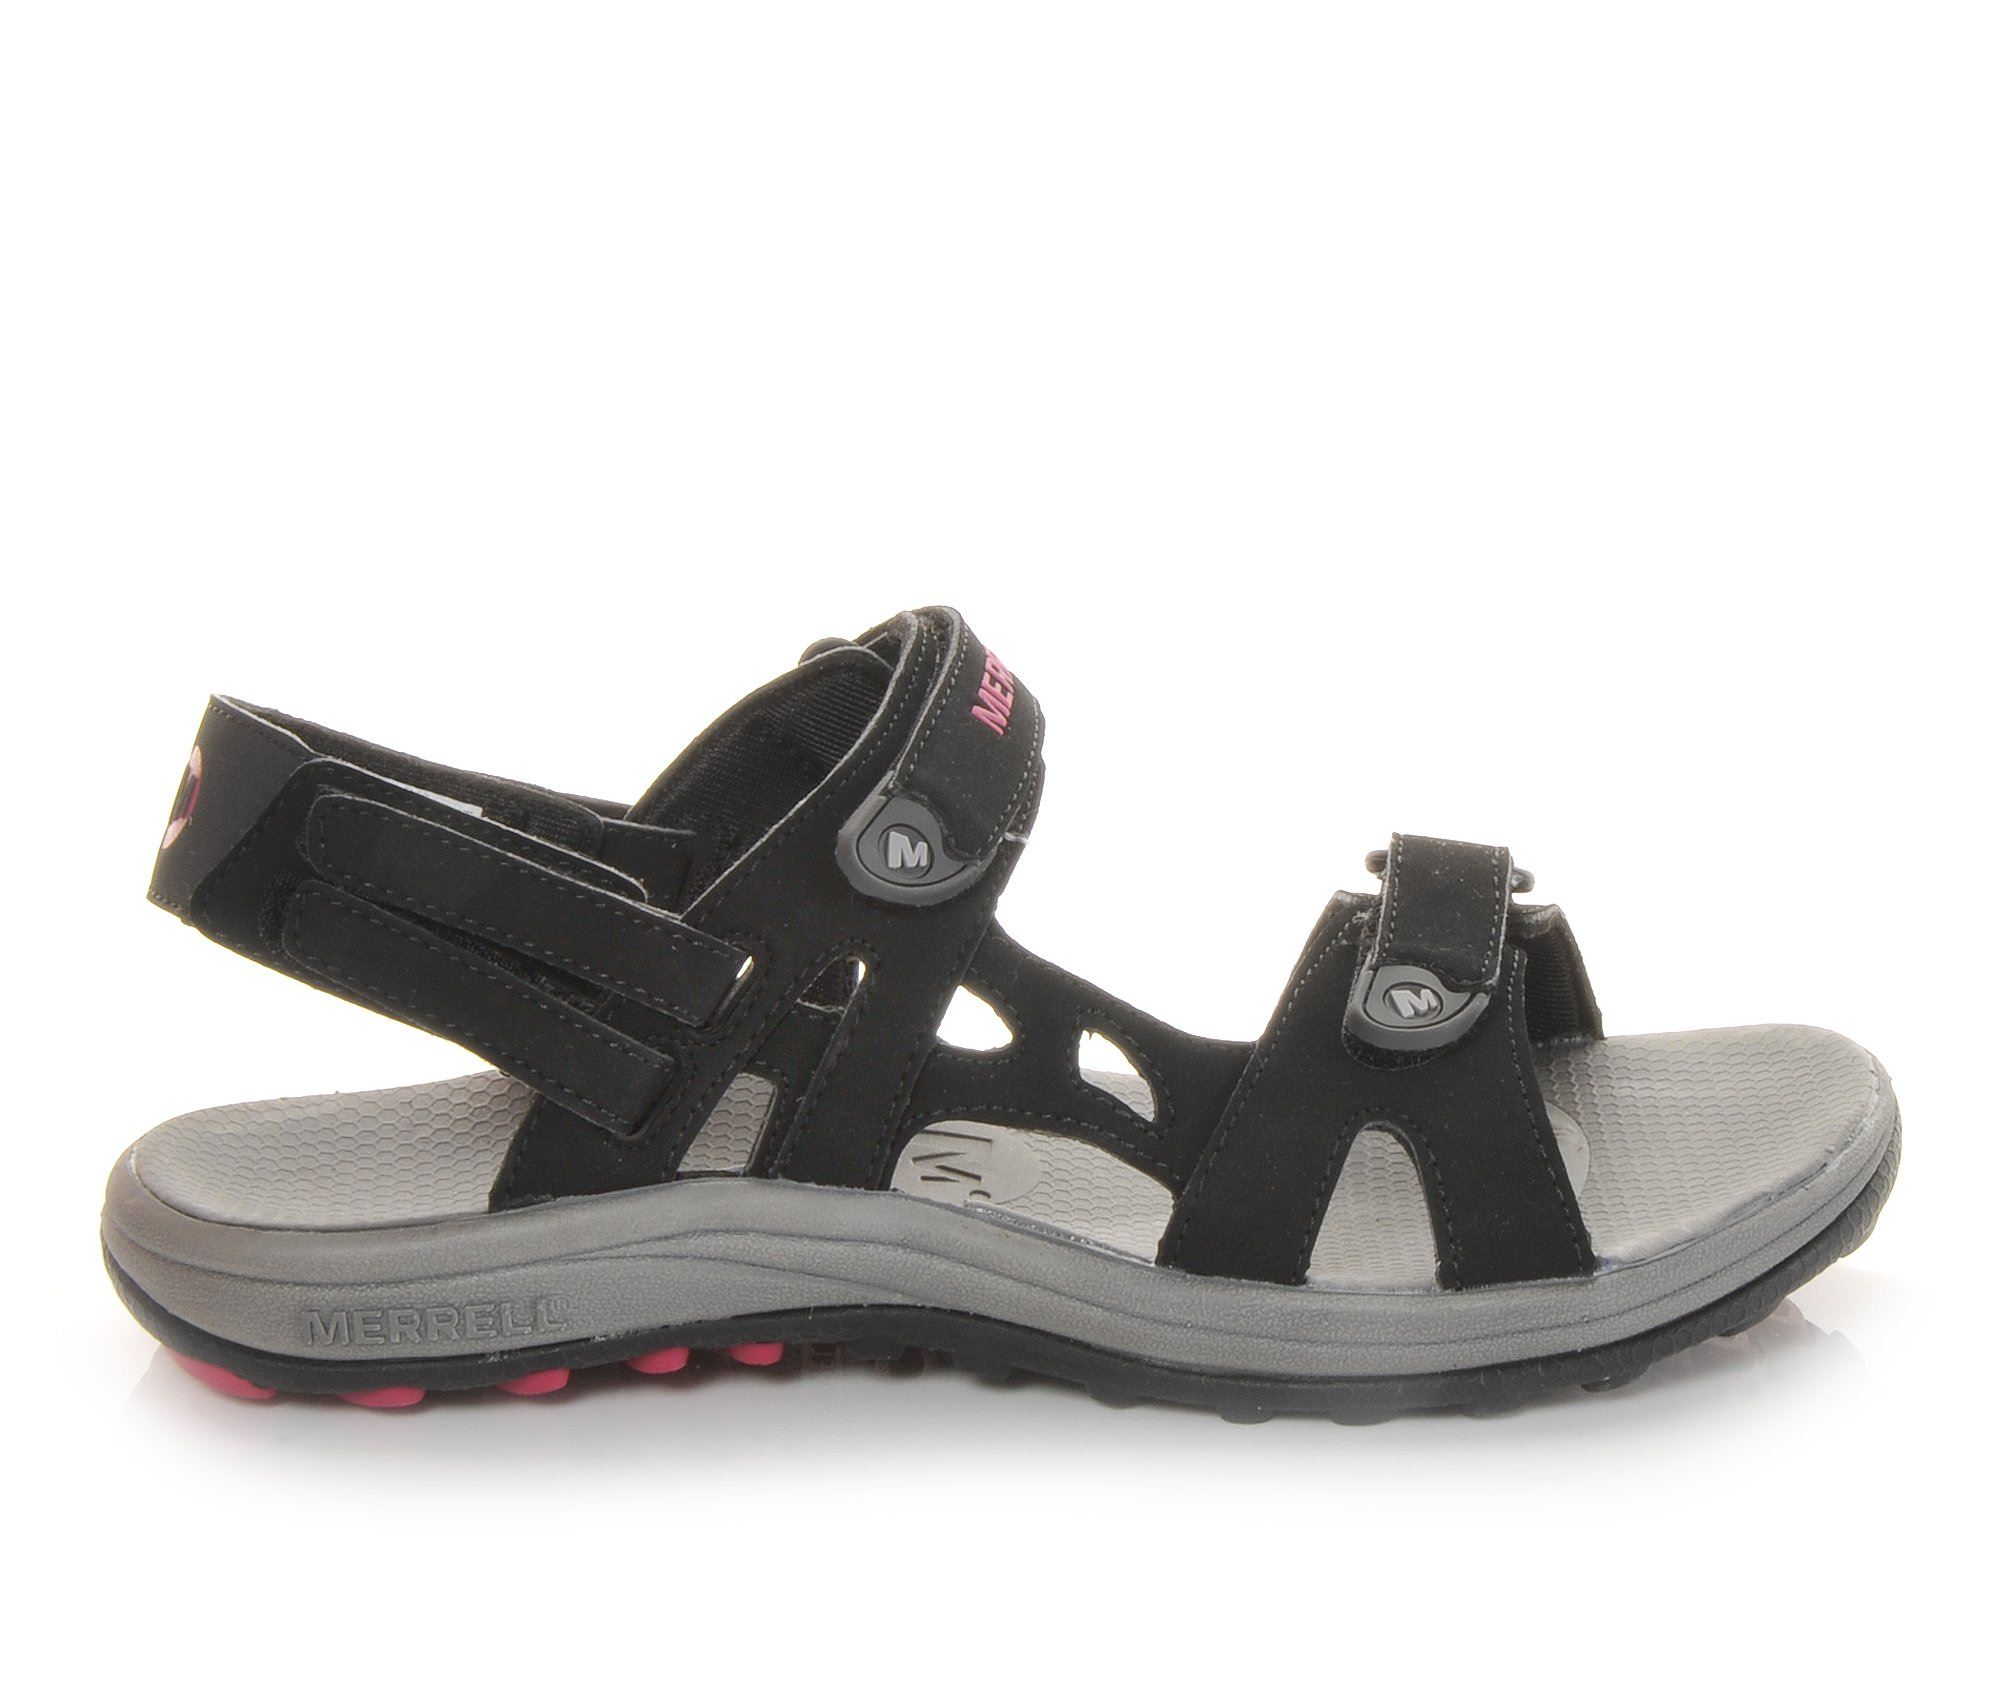 Women's Merrell Cedrus Convertible Sandals (Black)